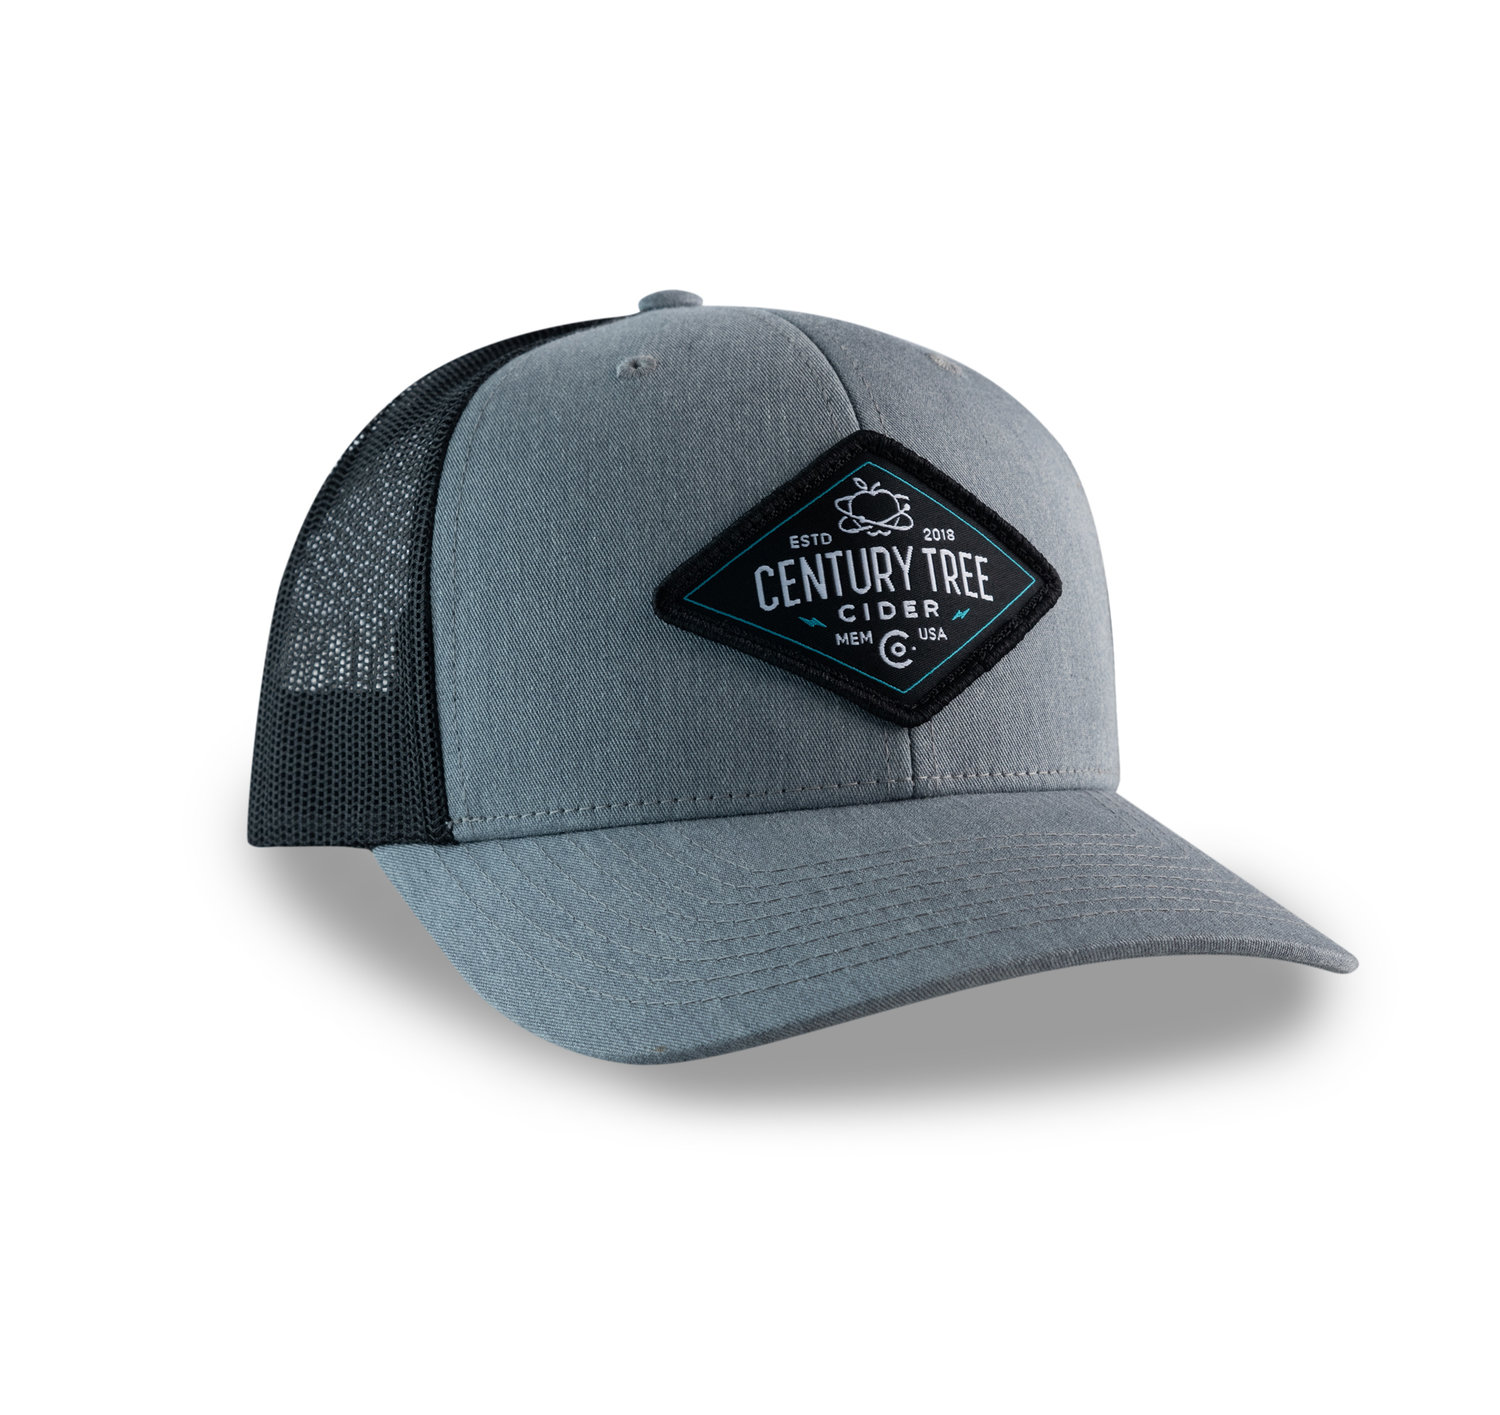 677c03372ad7c Premium Trucker Hat (Grey Black) — Century Tree Cider Co.